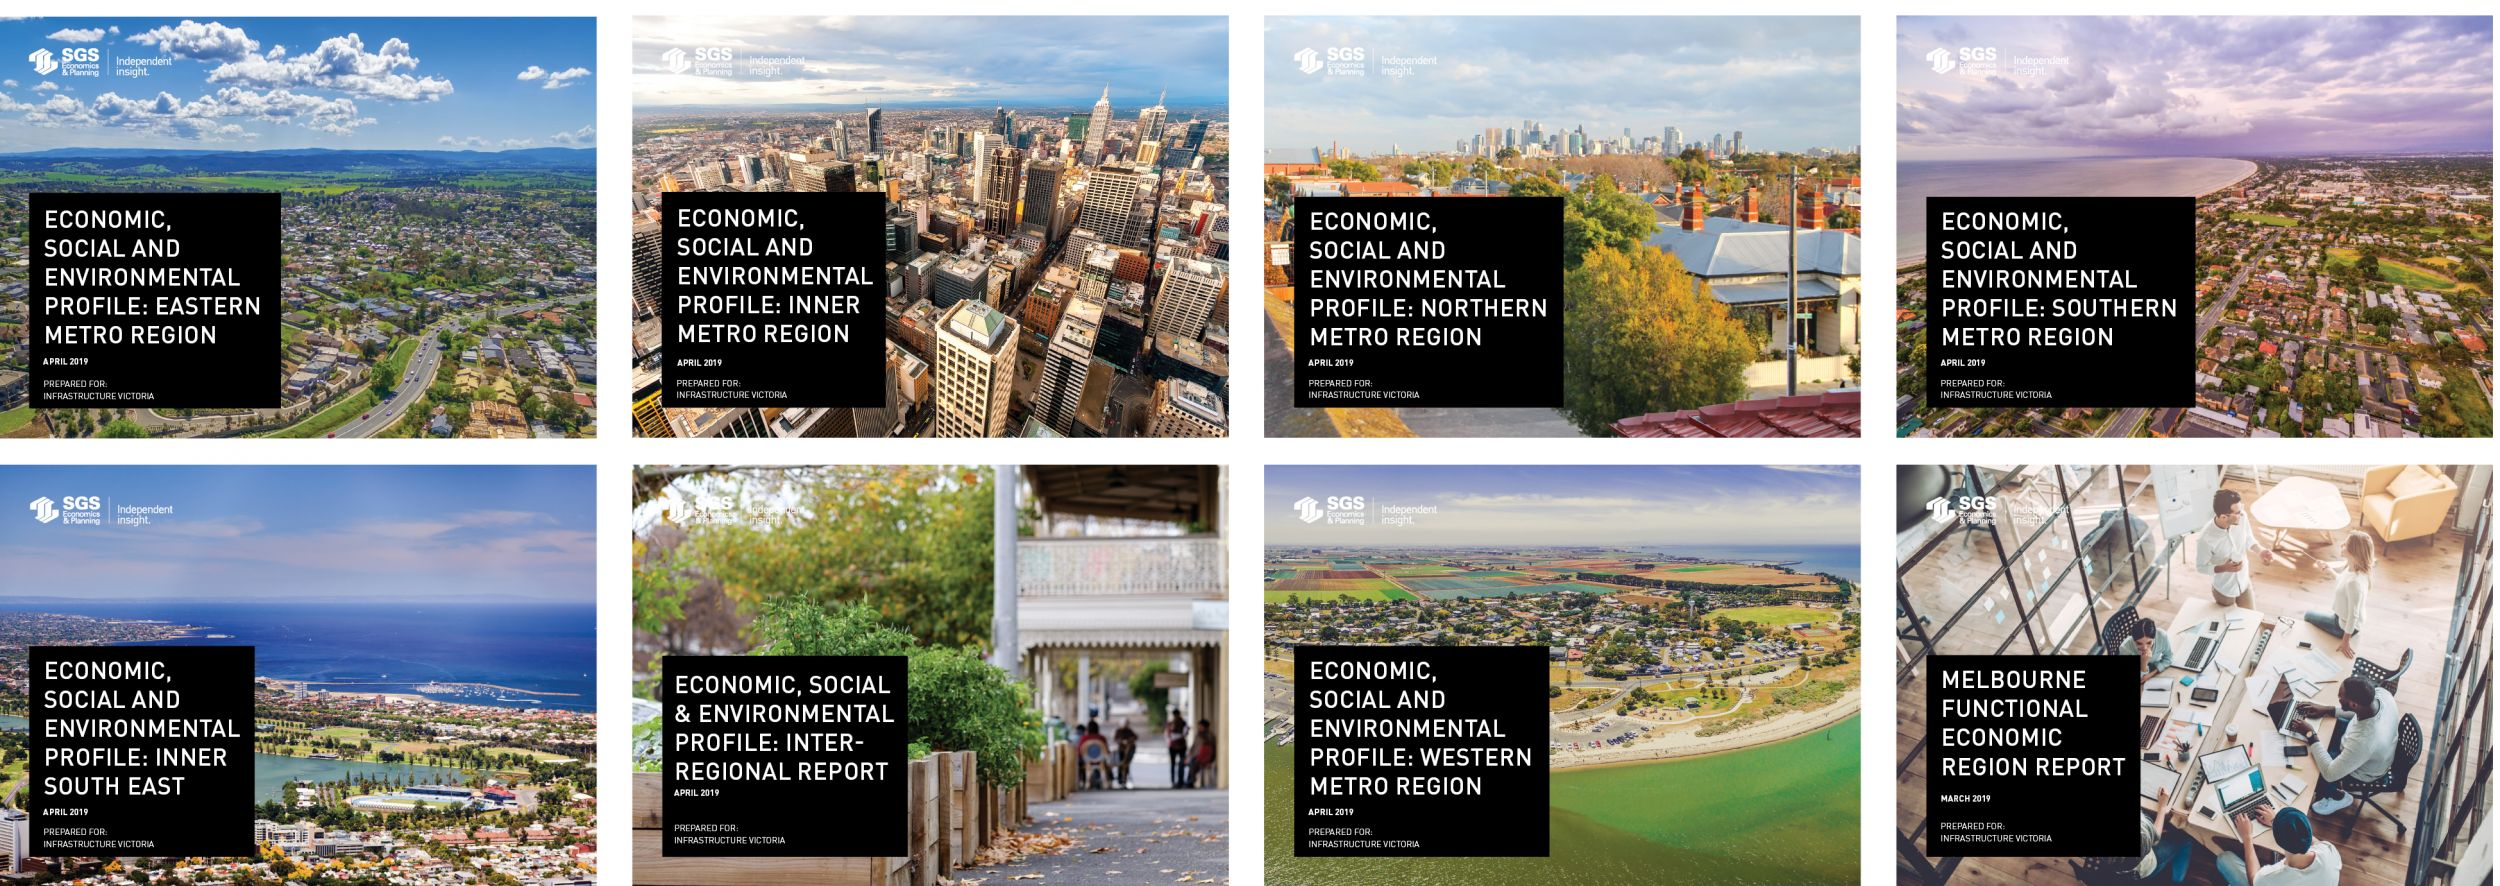 SGS Economics and Planning Spatial profile covers